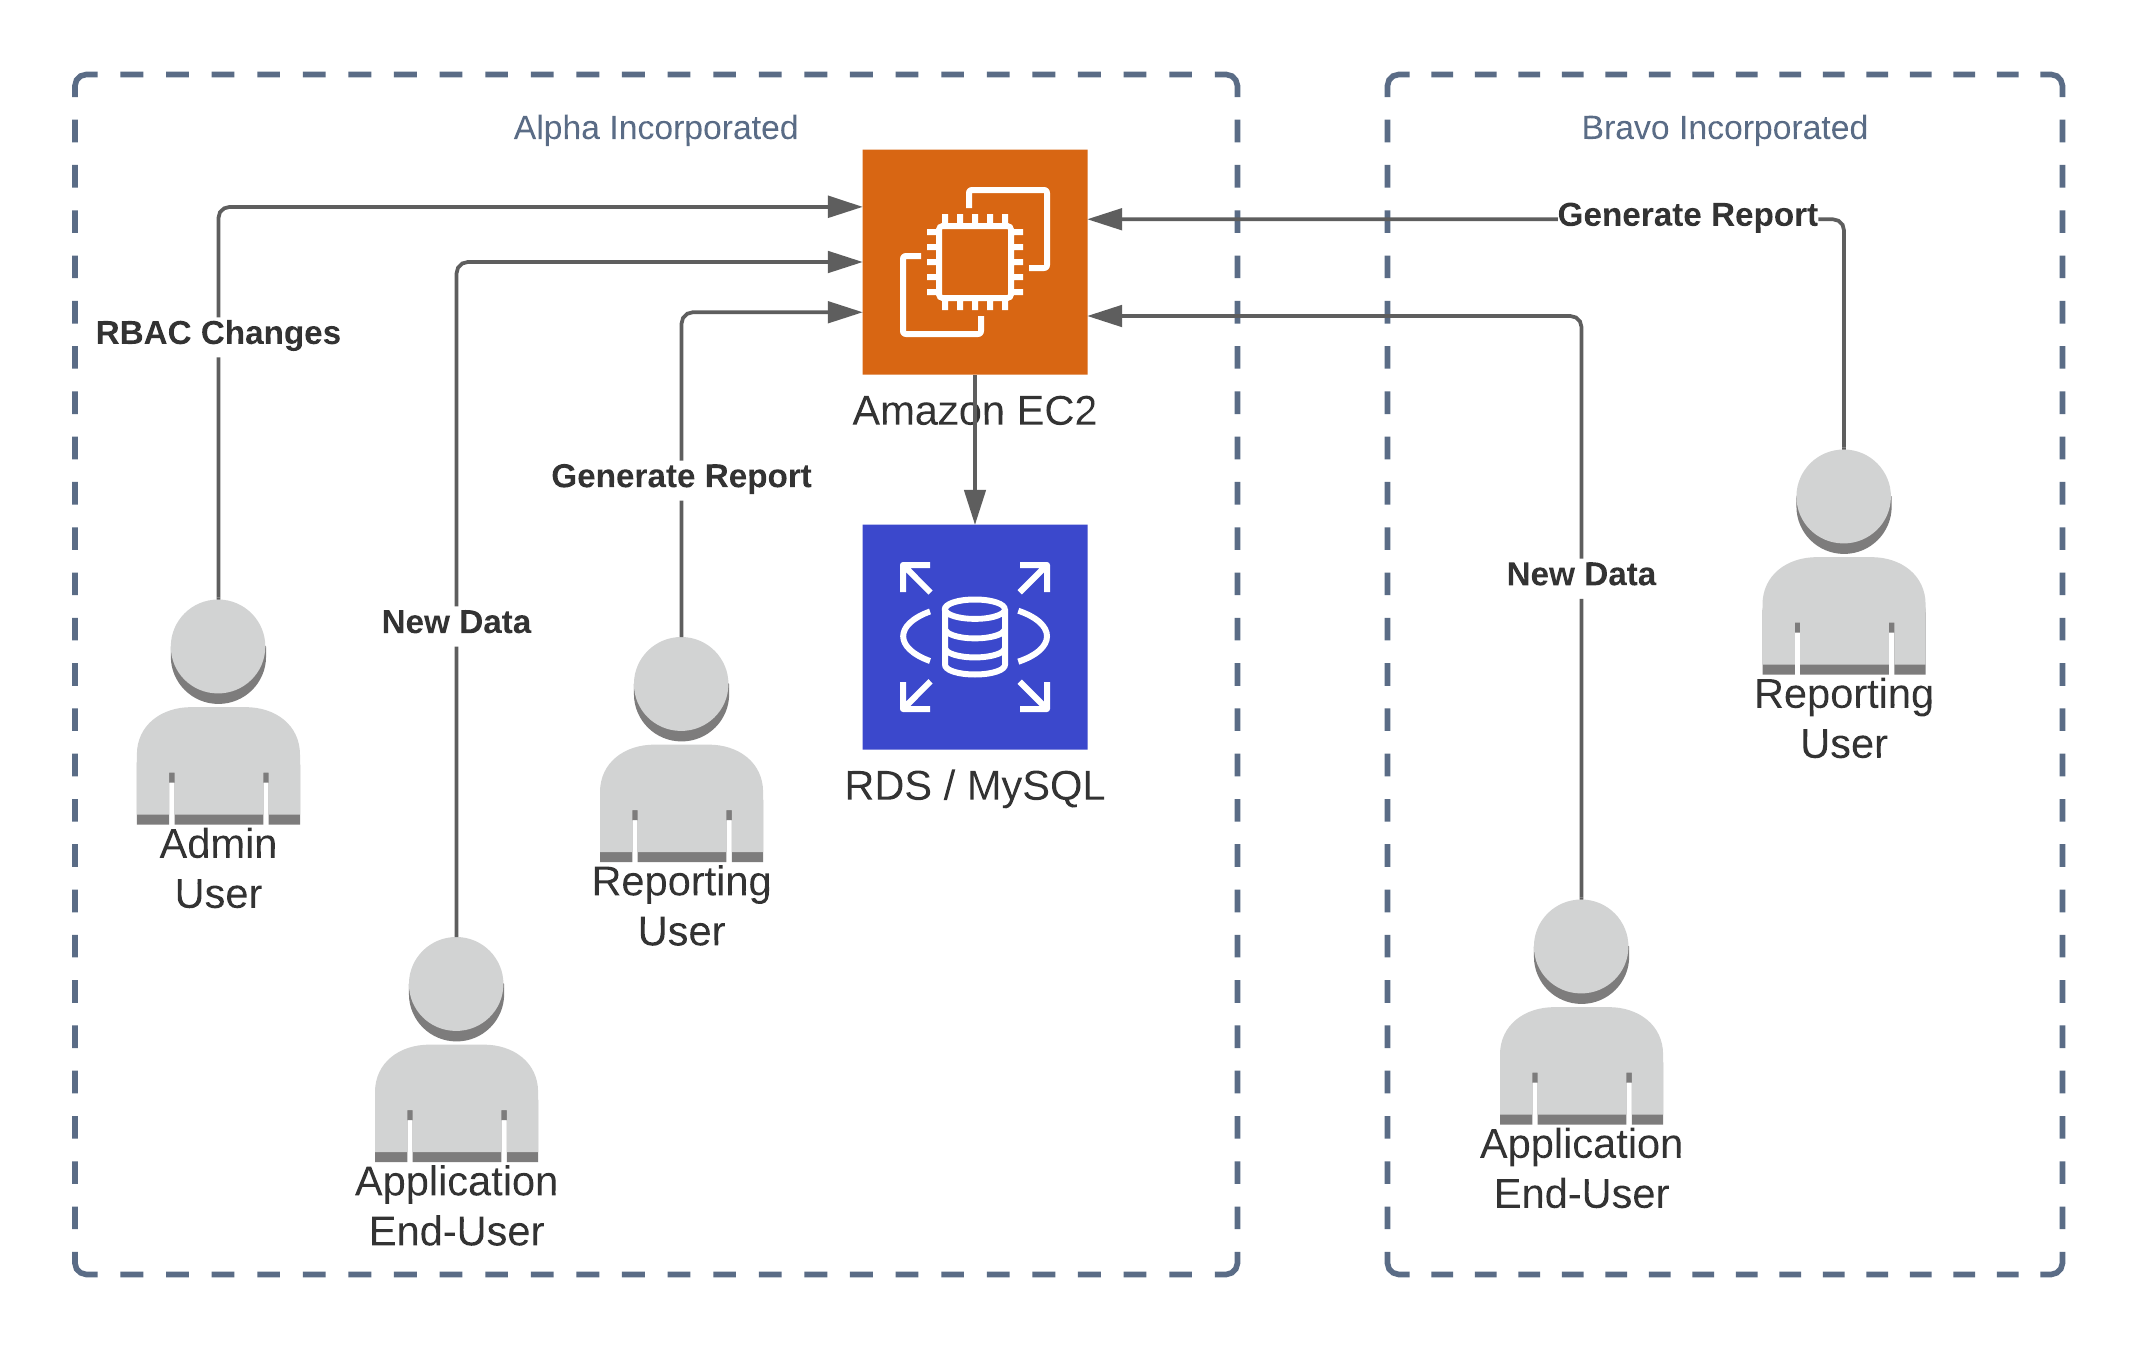 A diagram with a single central SQL database, accessed by users in different companies